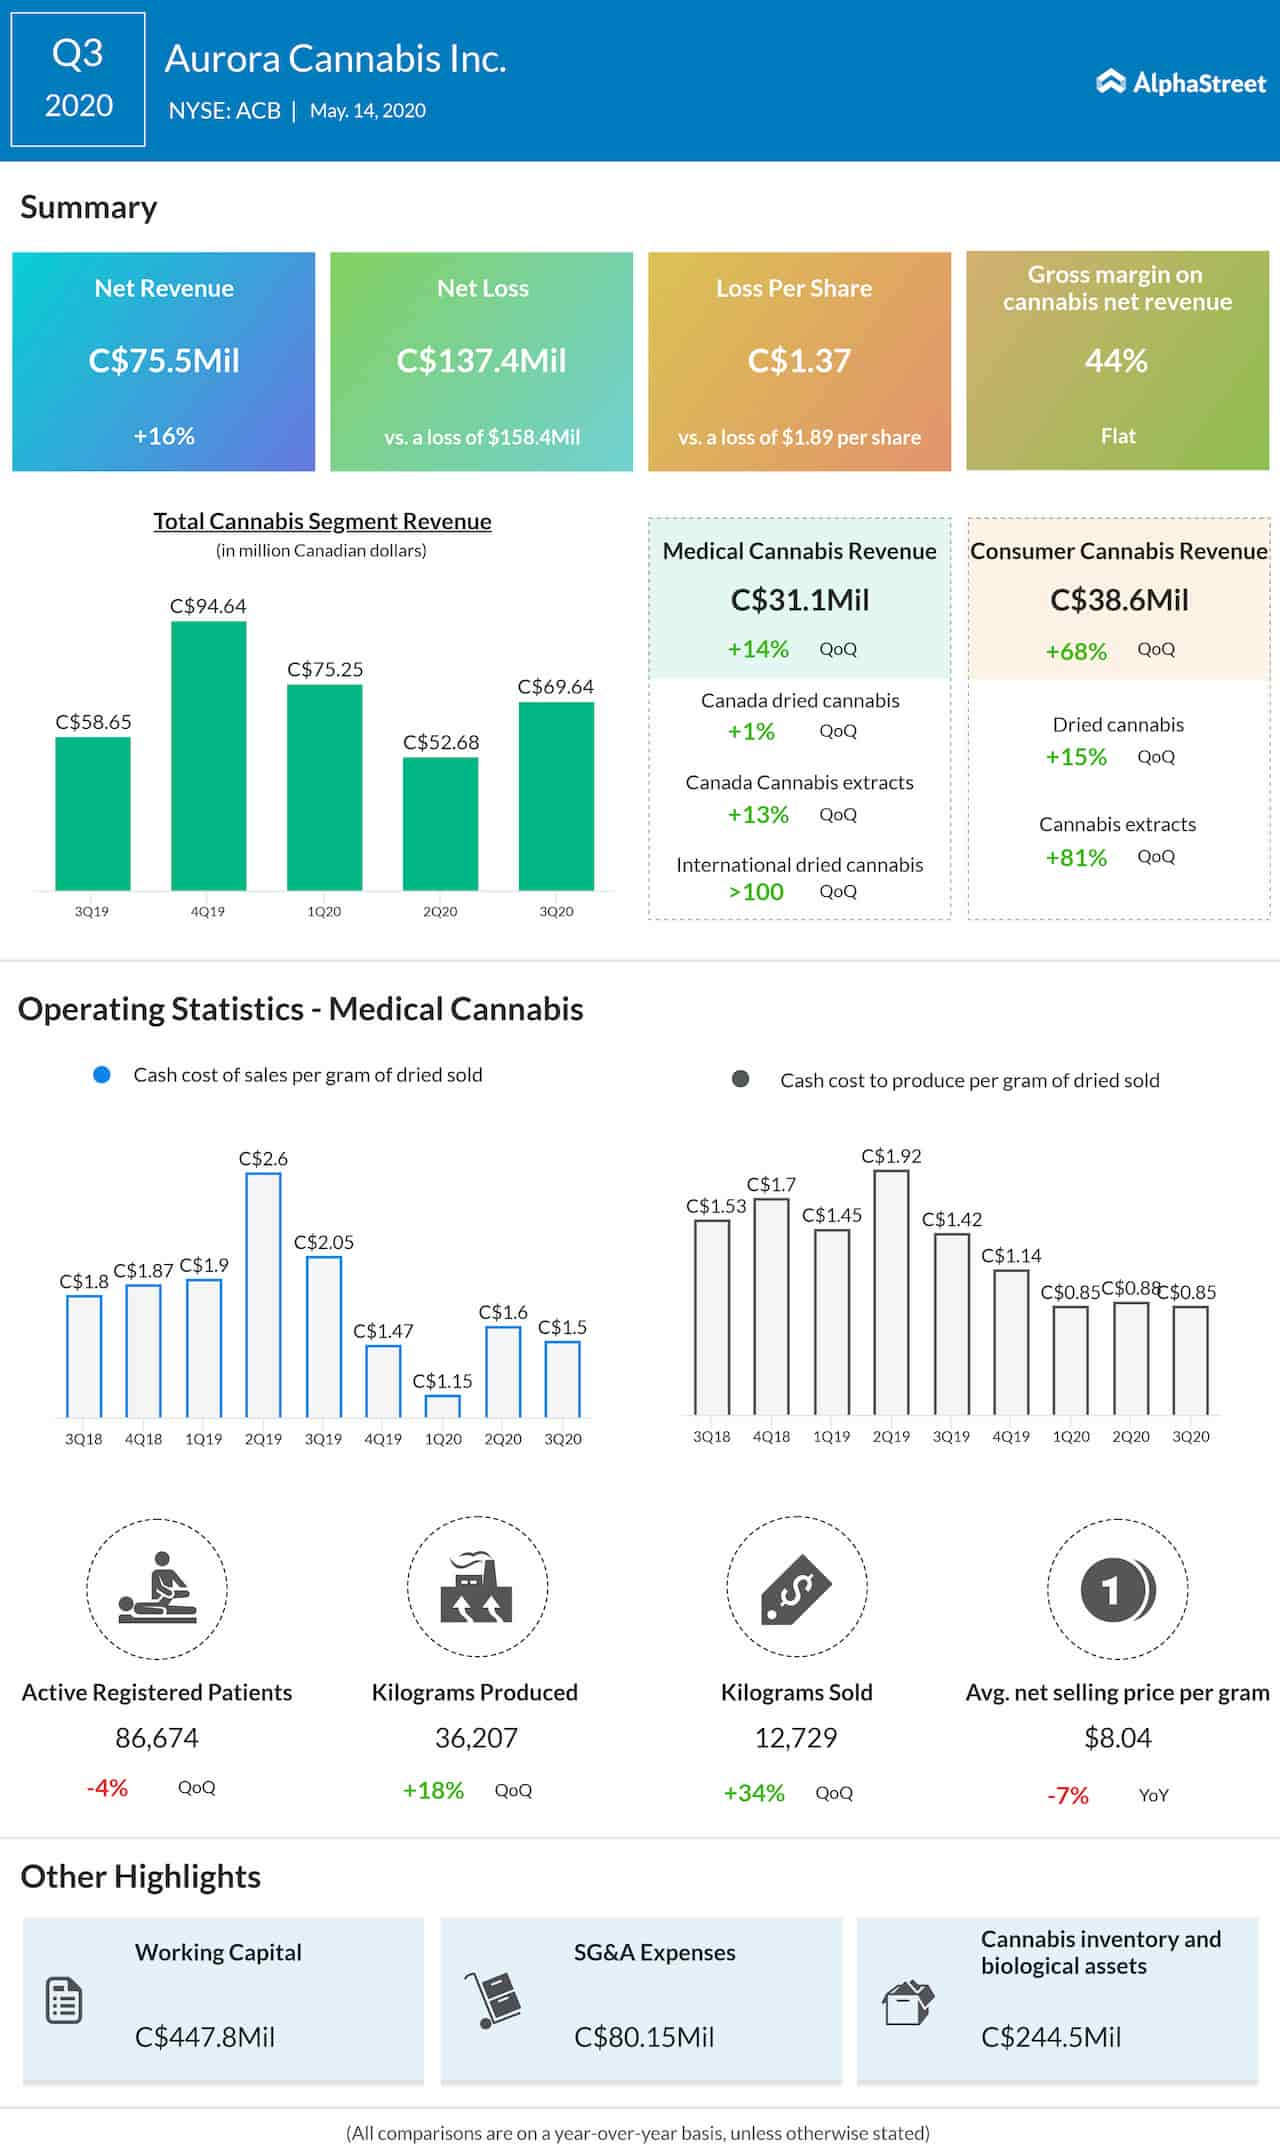 Aurora Cannabis Q3 2020 Earnings Infographic